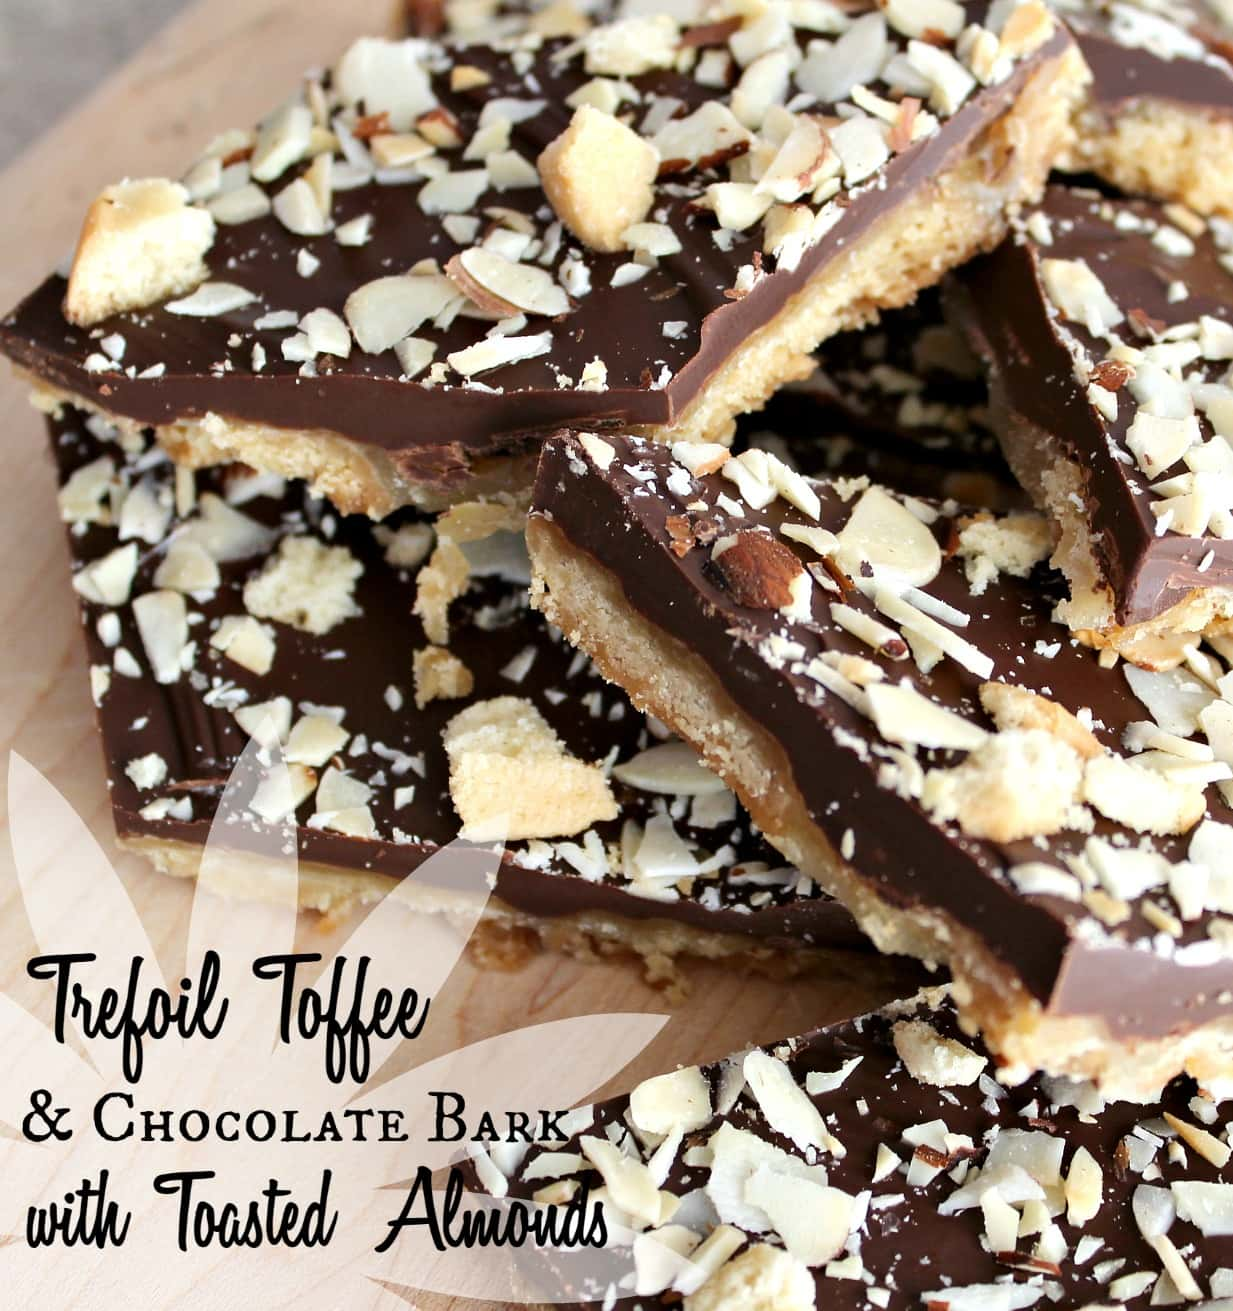 Trefoils Toffee & Chocolate Bark with Toasted Almonds is a chewy, chocolatey candy with Girl Scouts Trefoils cookies. Easy to create & so delicious!